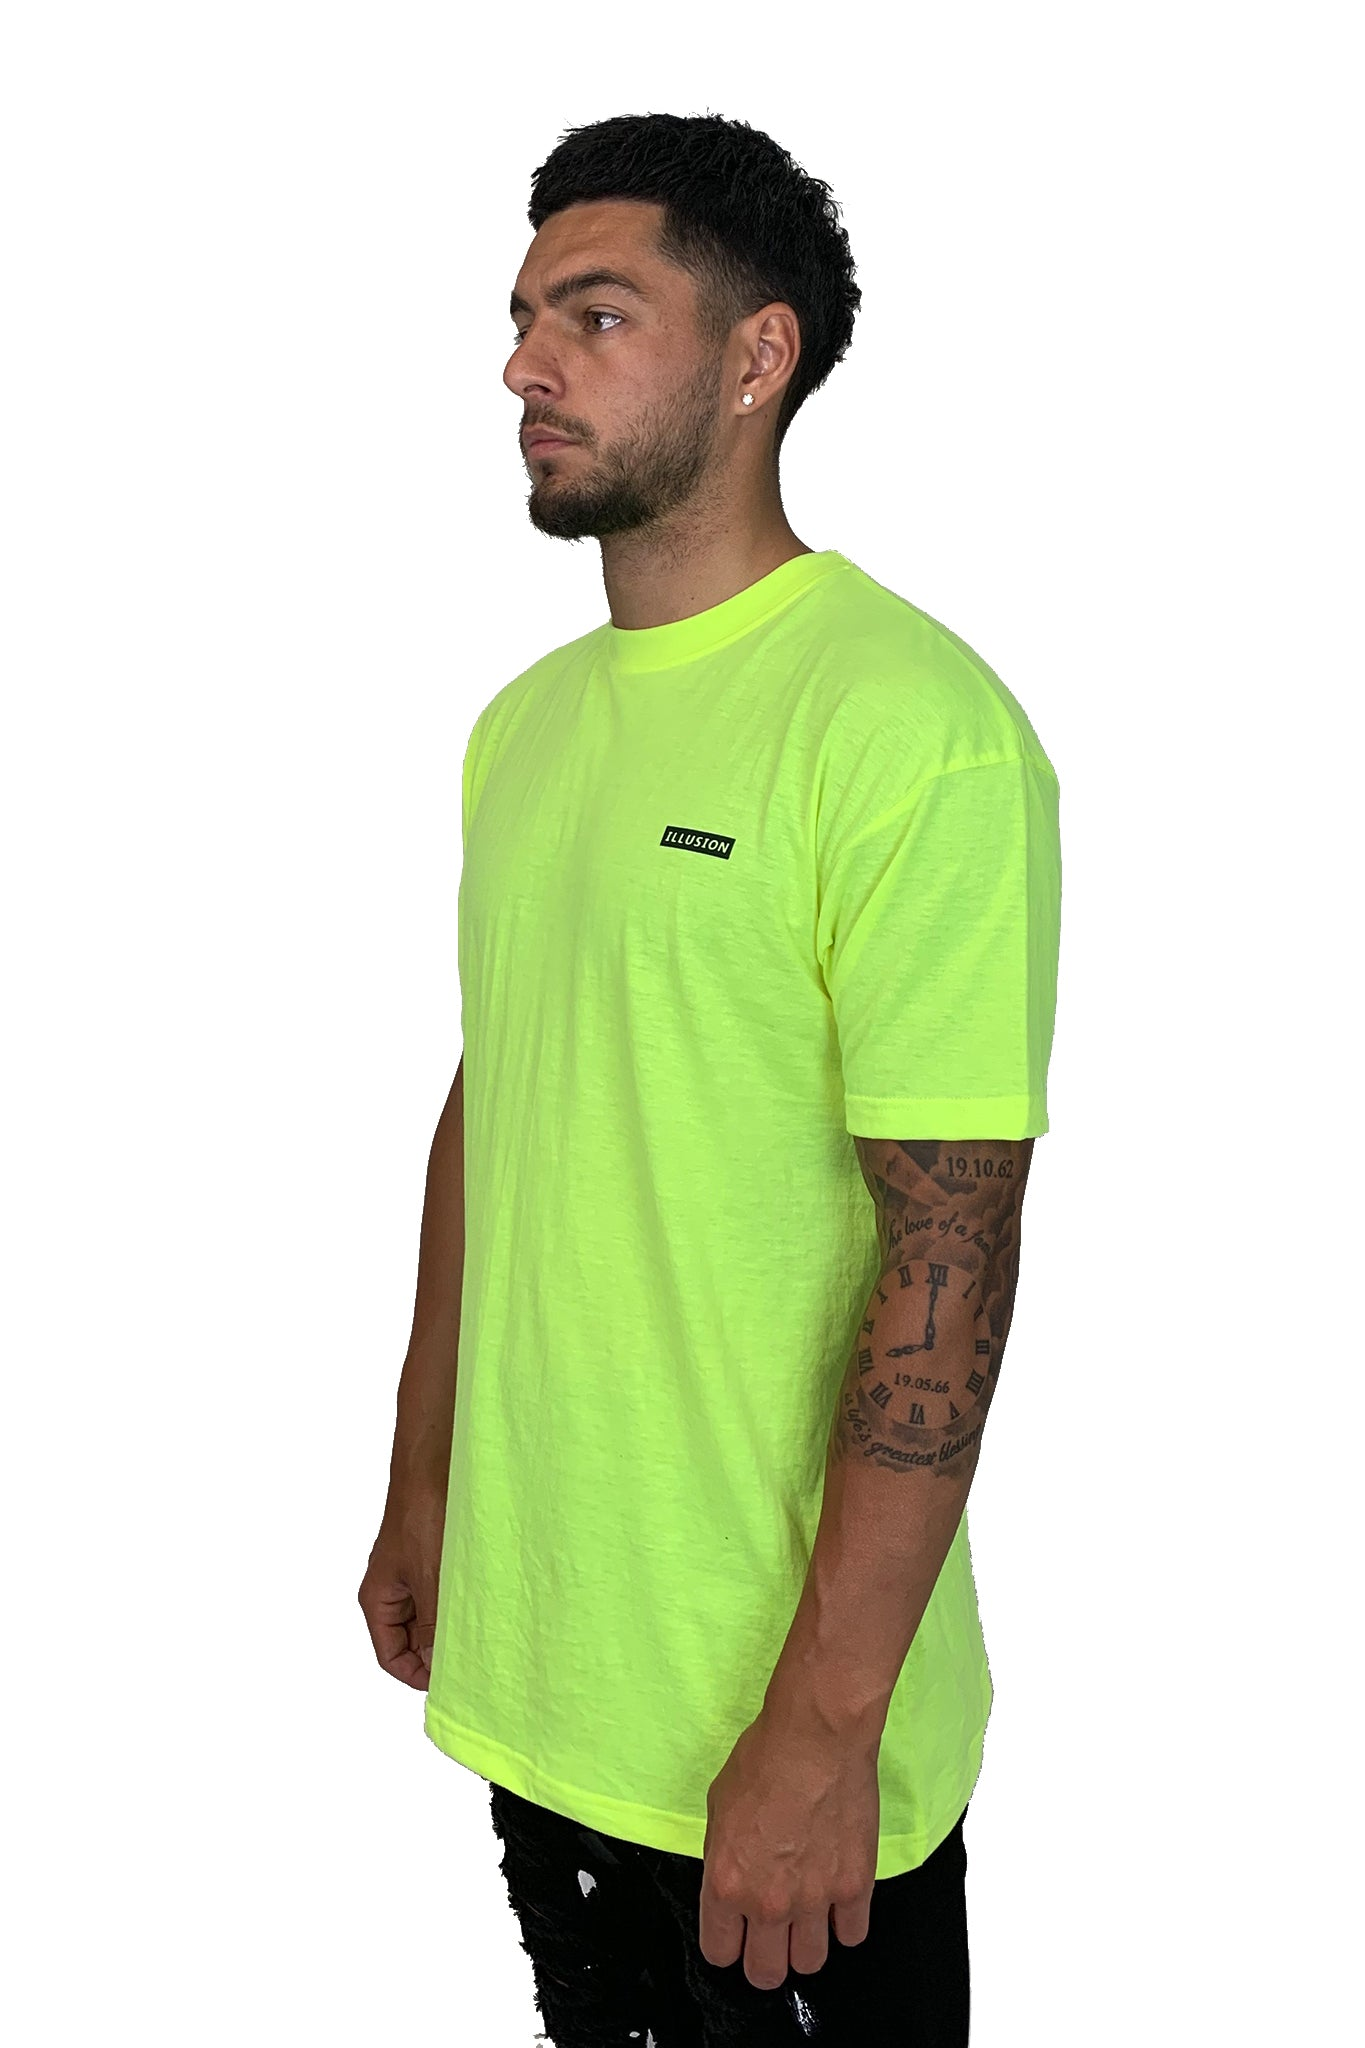 OVERSIZED NEON STENCIL TEE - Illusion Attire